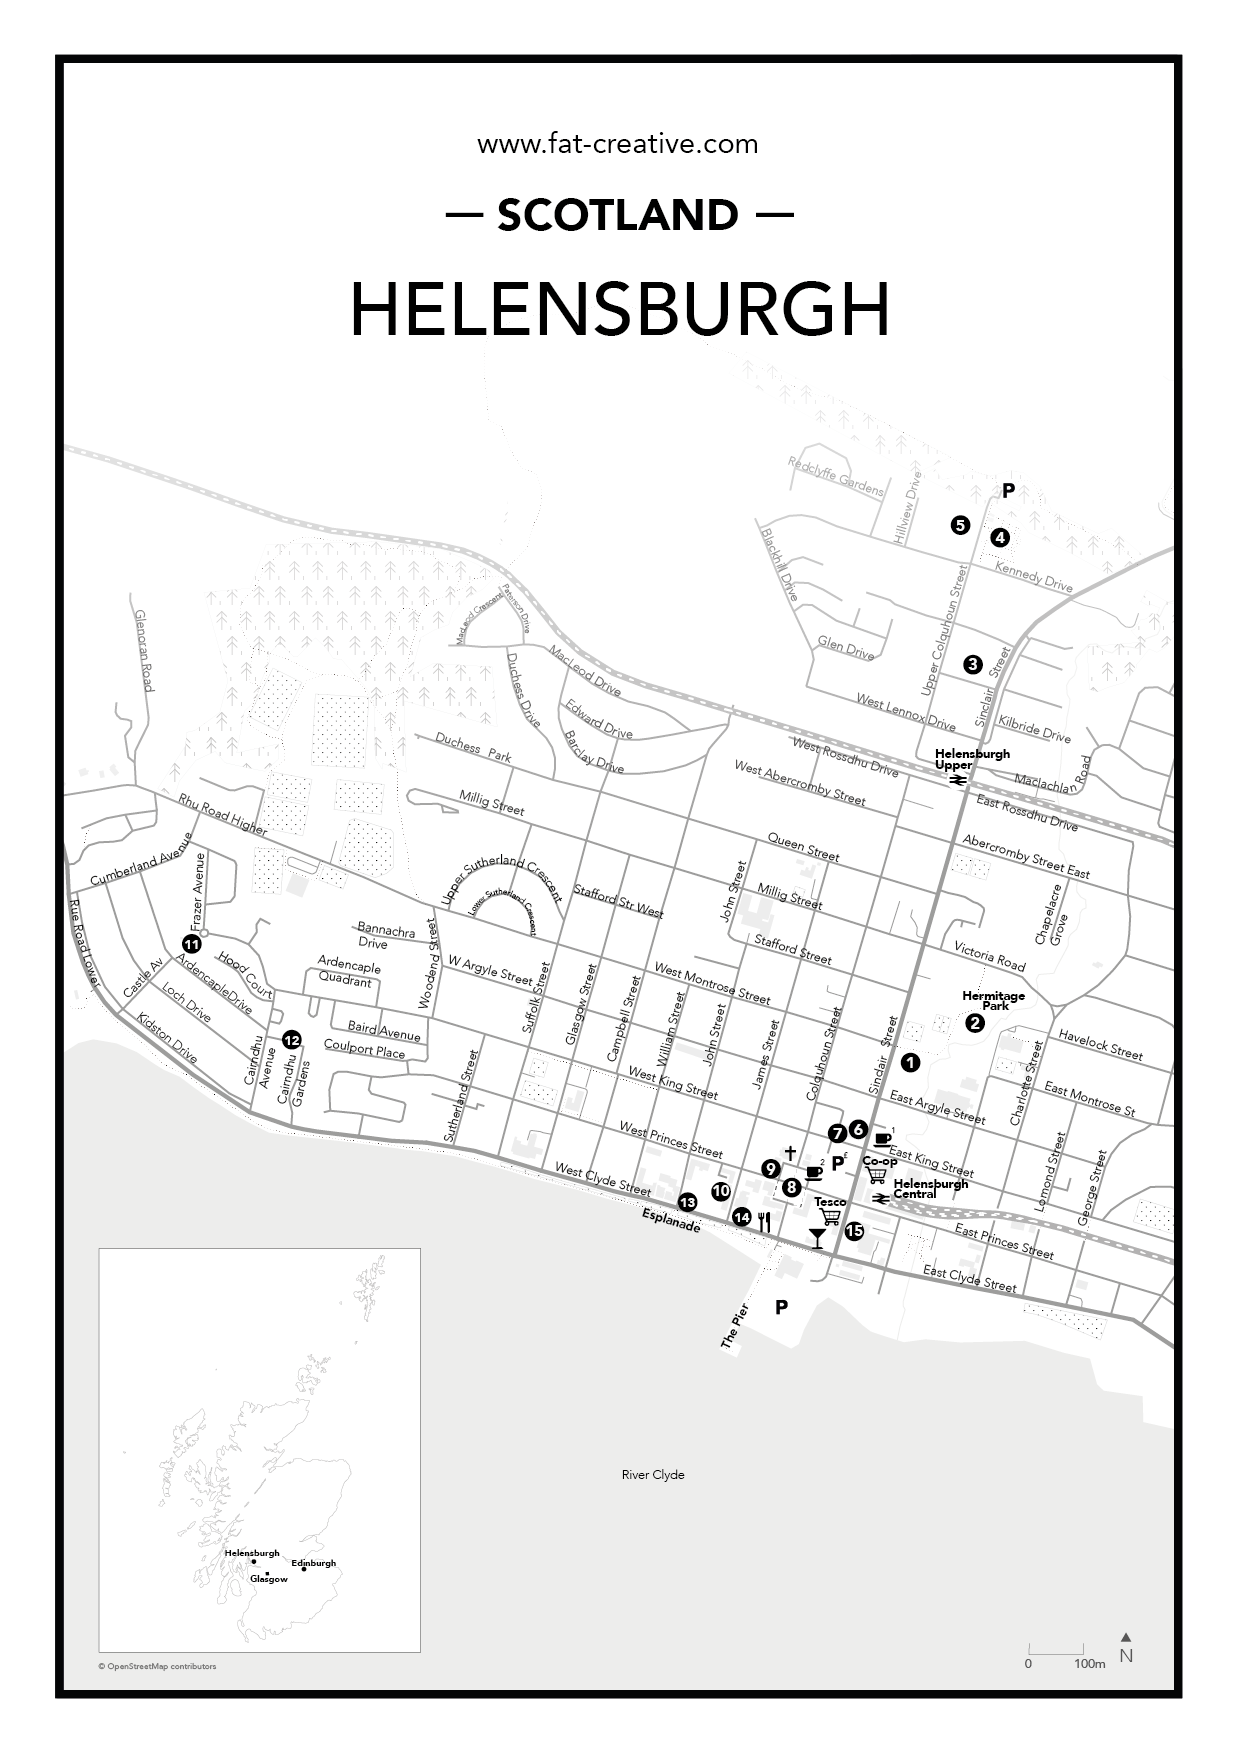 Helensburgh-01.png